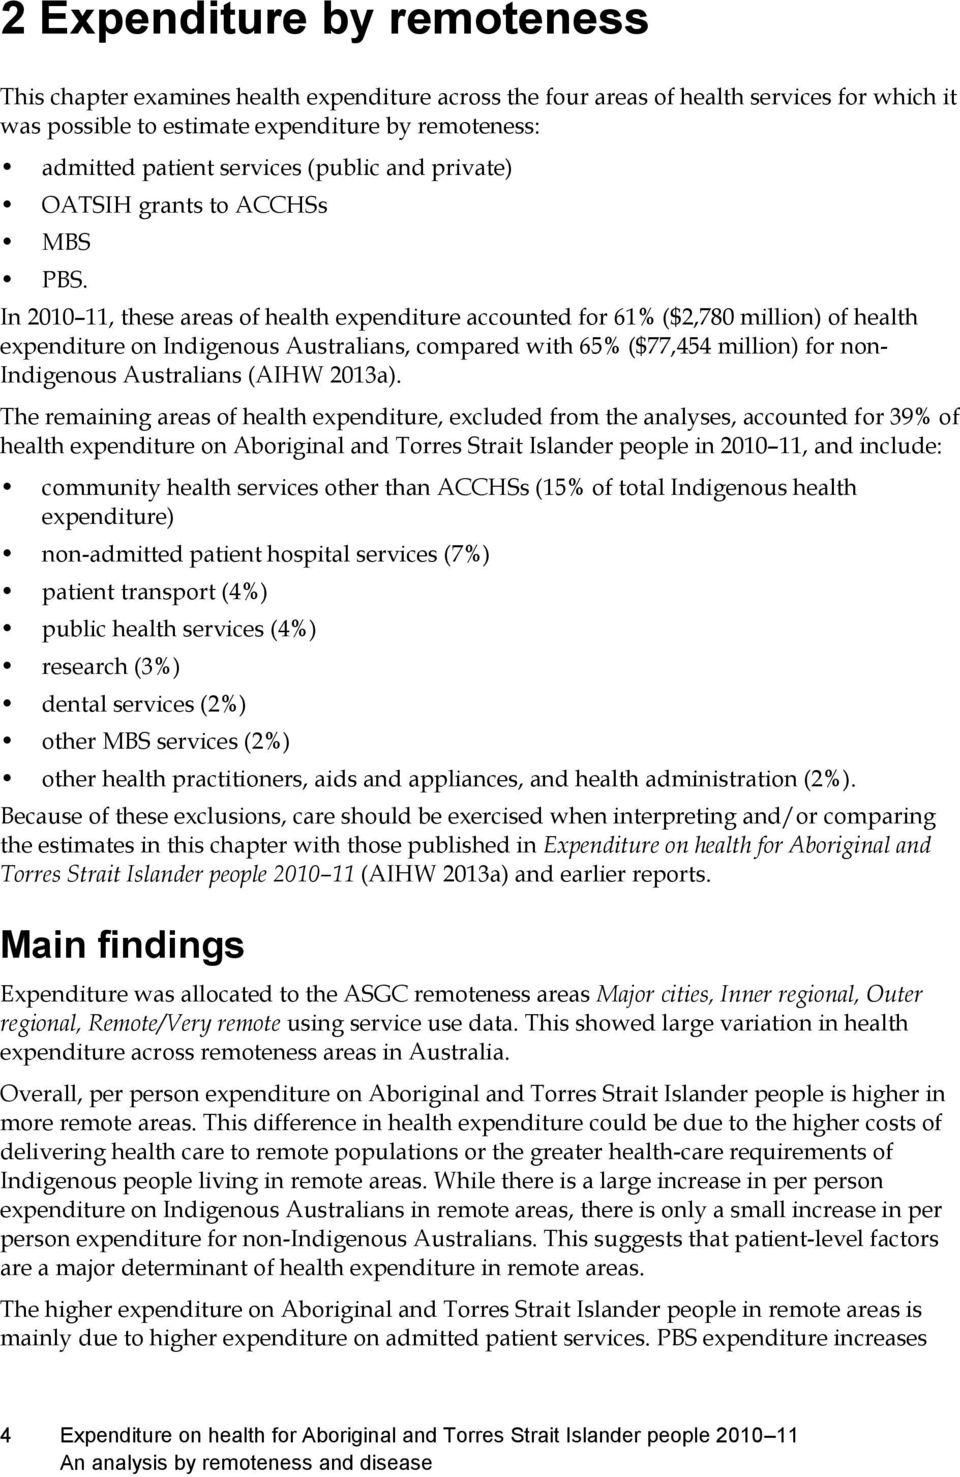 In 2010 11, these areas of health expenditure accounted for 61% ($2,780 million) of health expenditure on Indigenous Australians, compared with 65% ($77,454 million) for non- Indigenous Australians